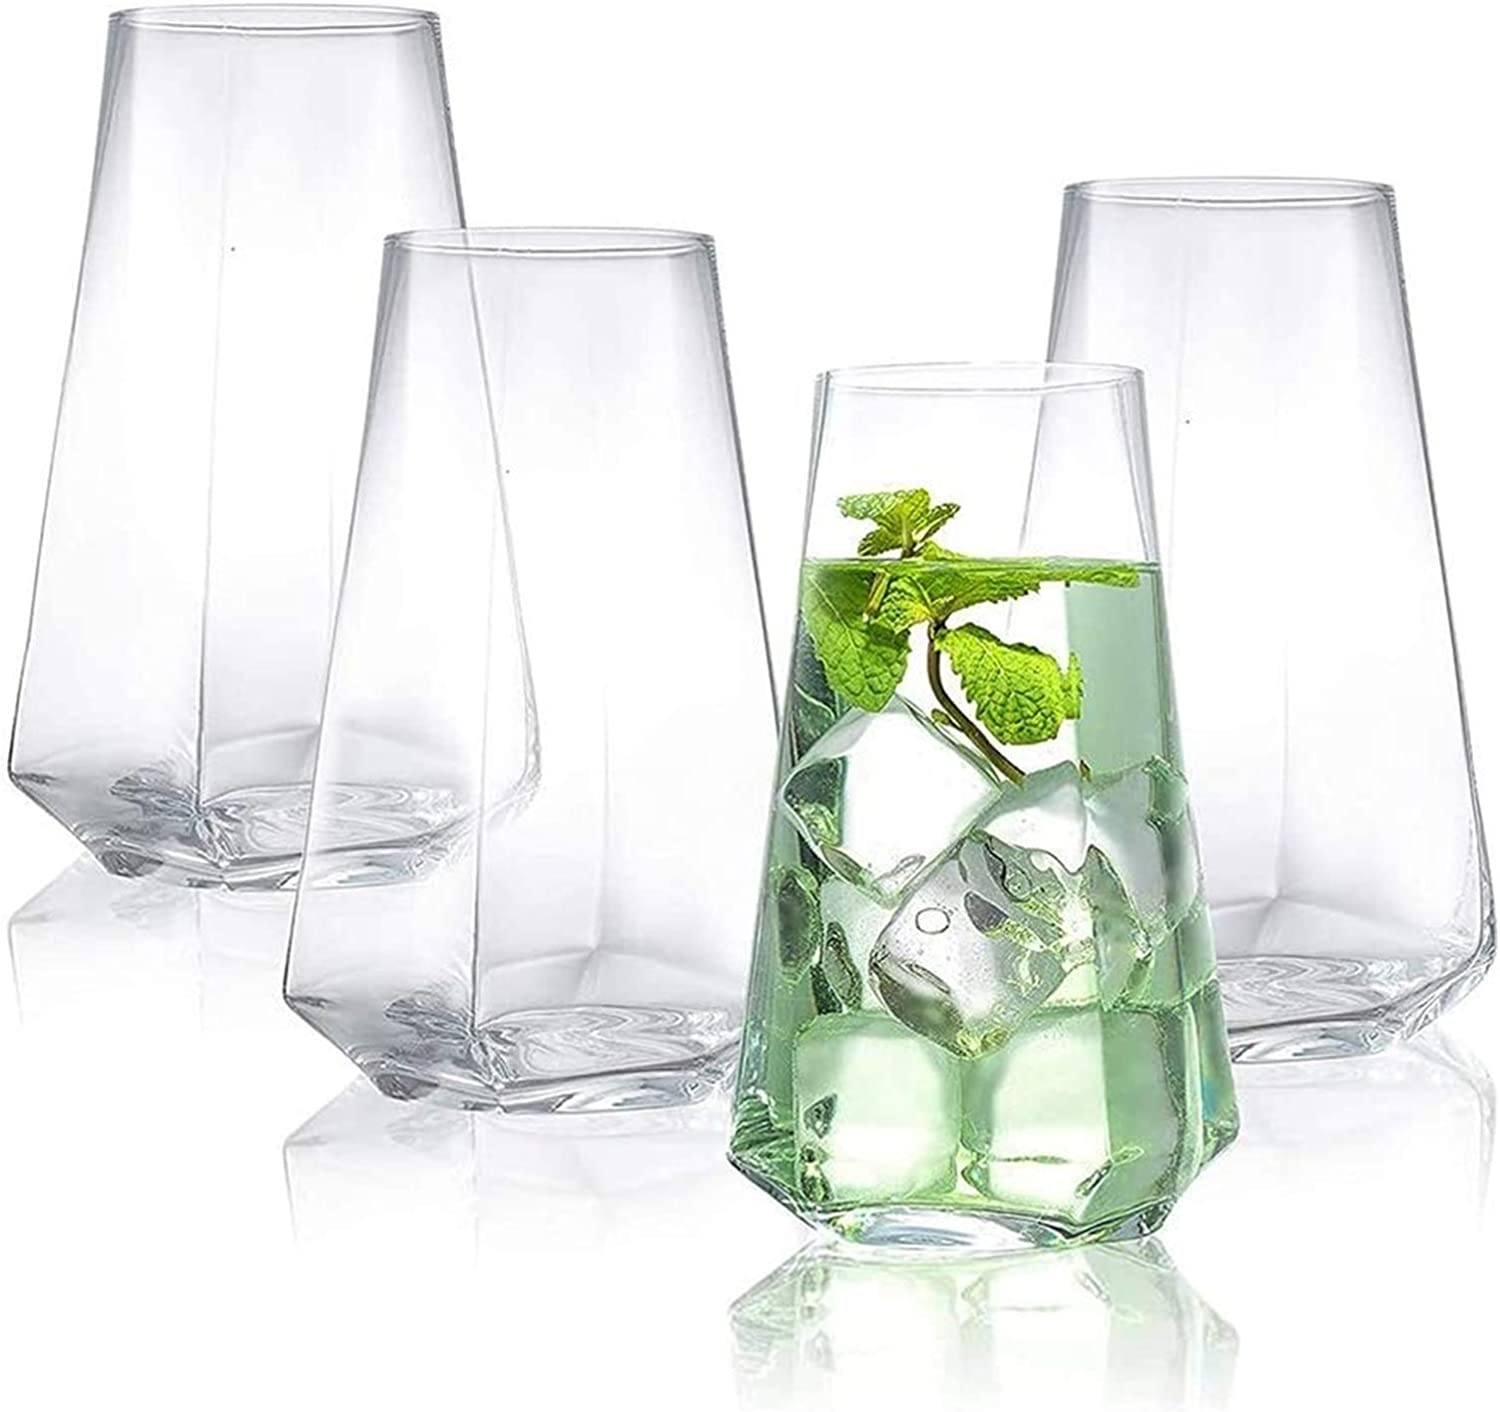 whiskey decanter Highball Glasses Set 18Oz of Cocktail Opening large release sale Max 80% OFF 4